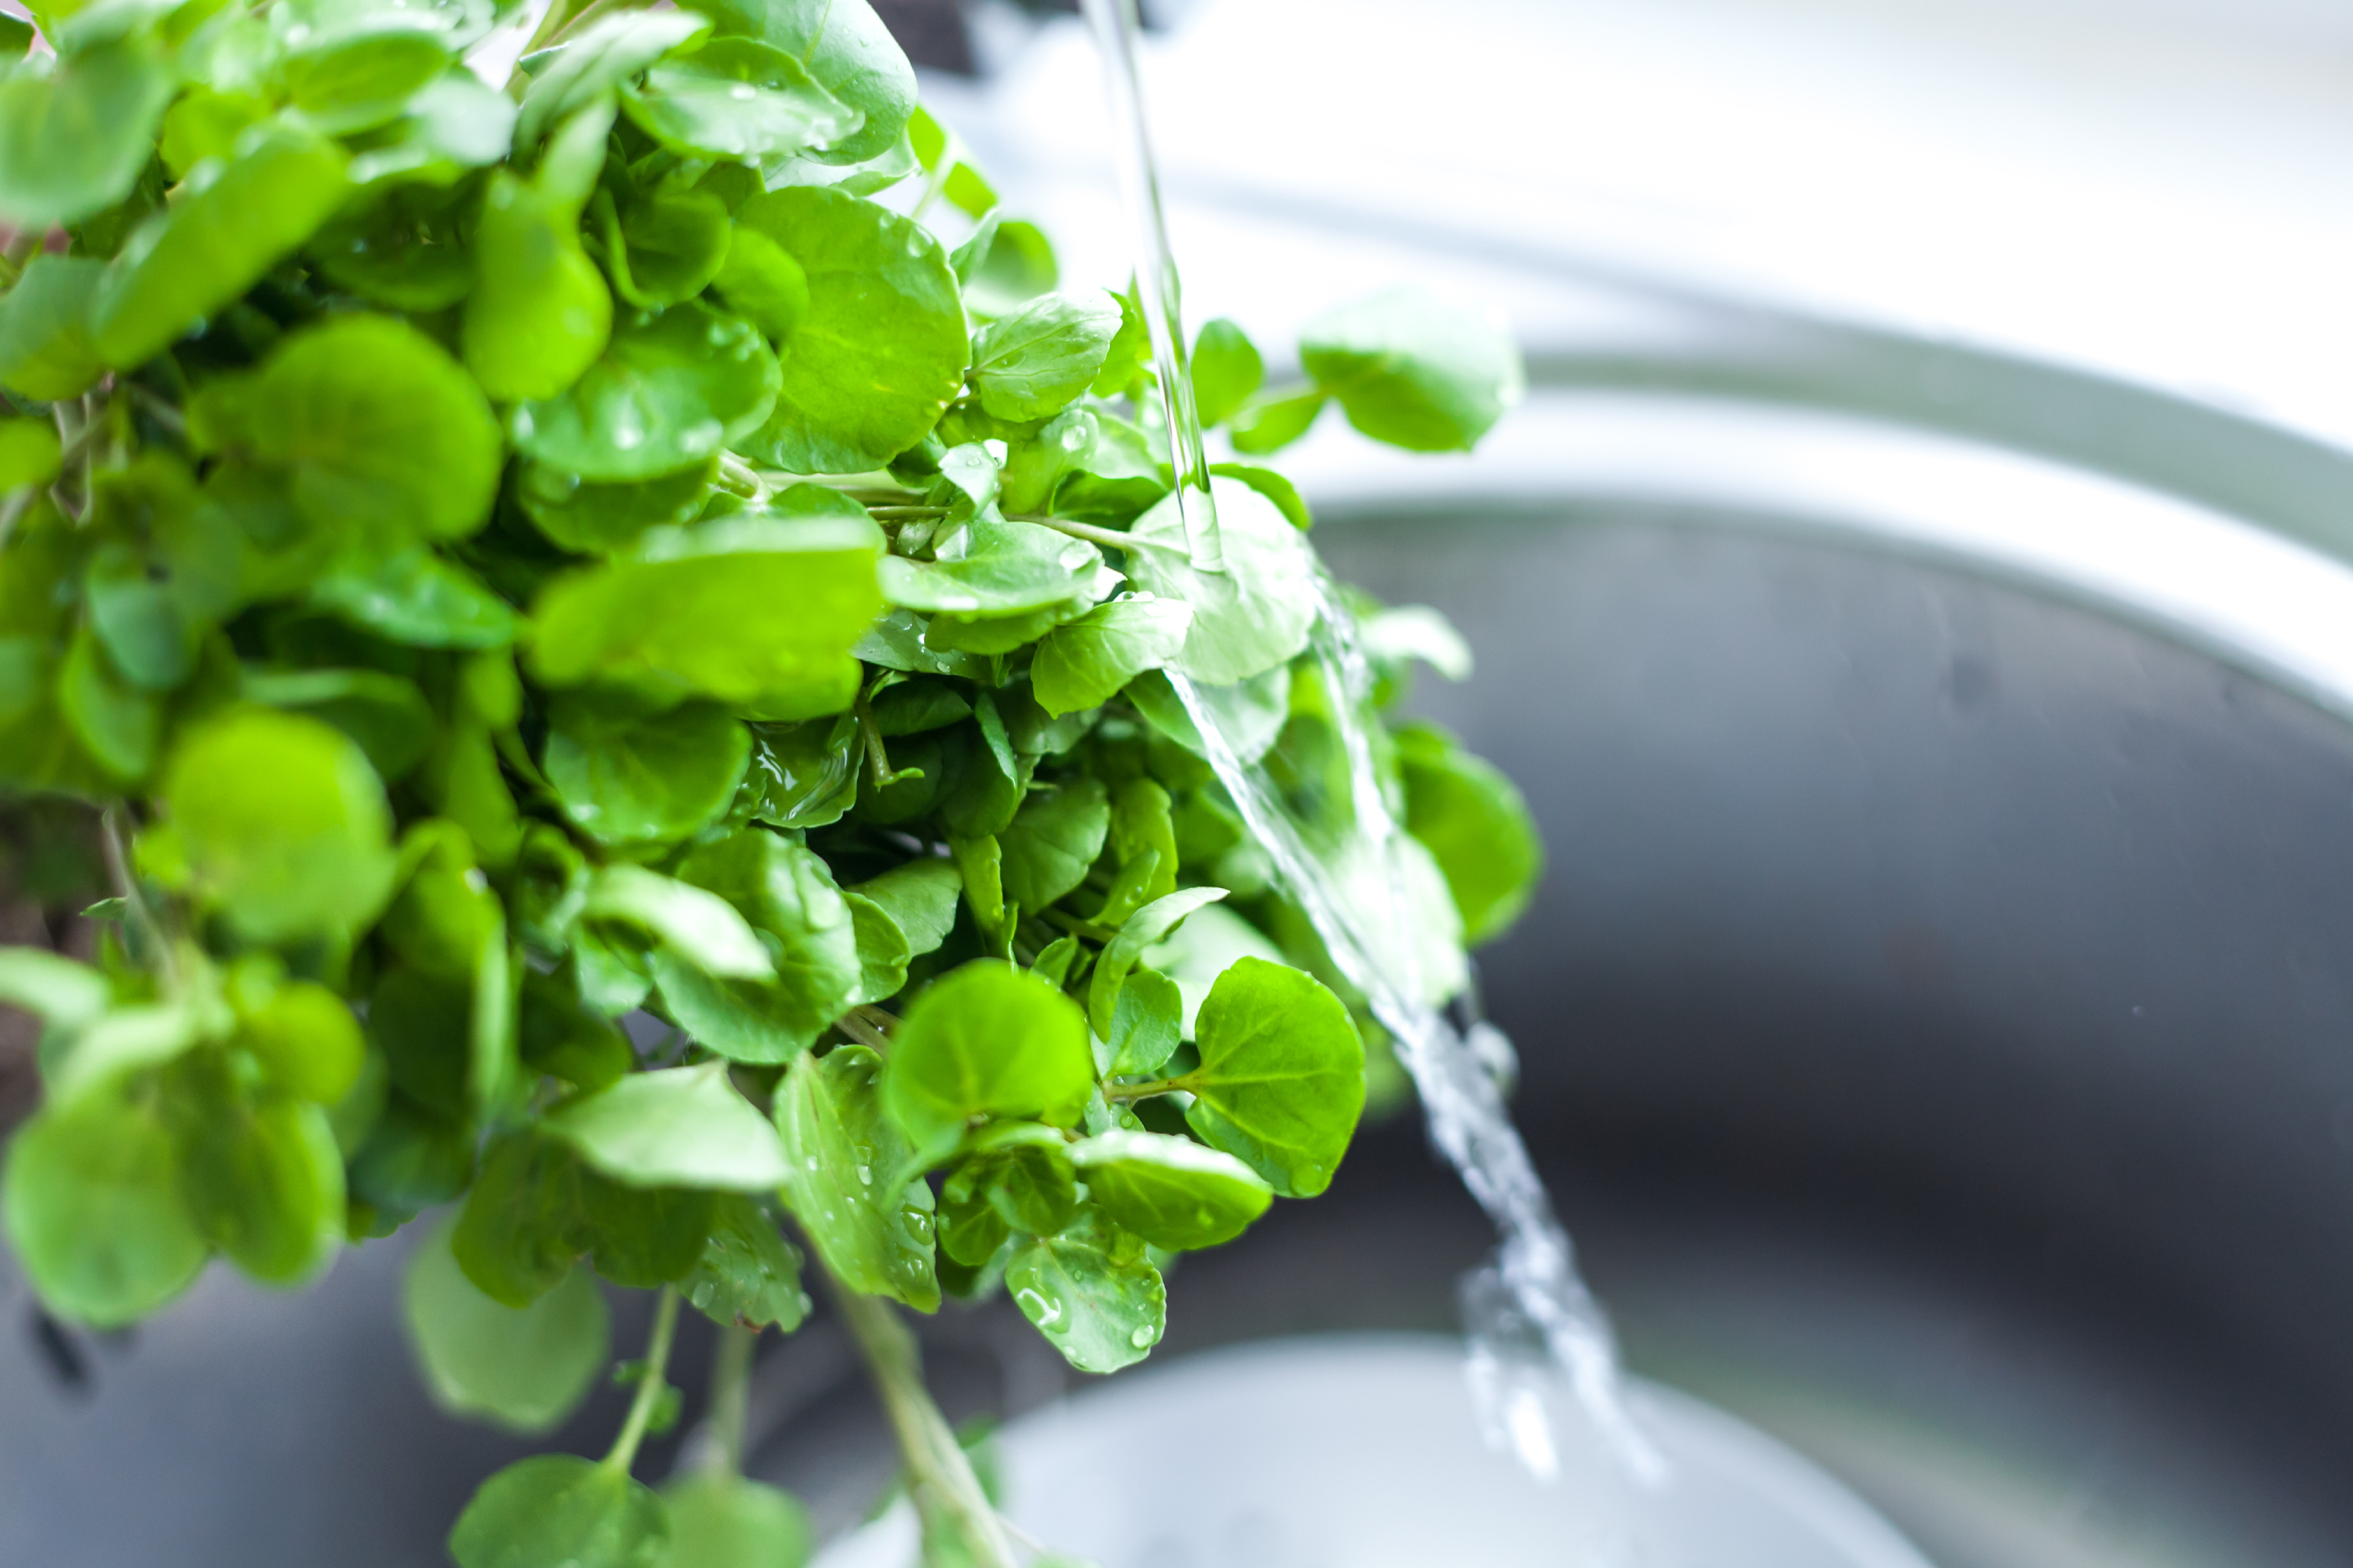 Grow your own watercress